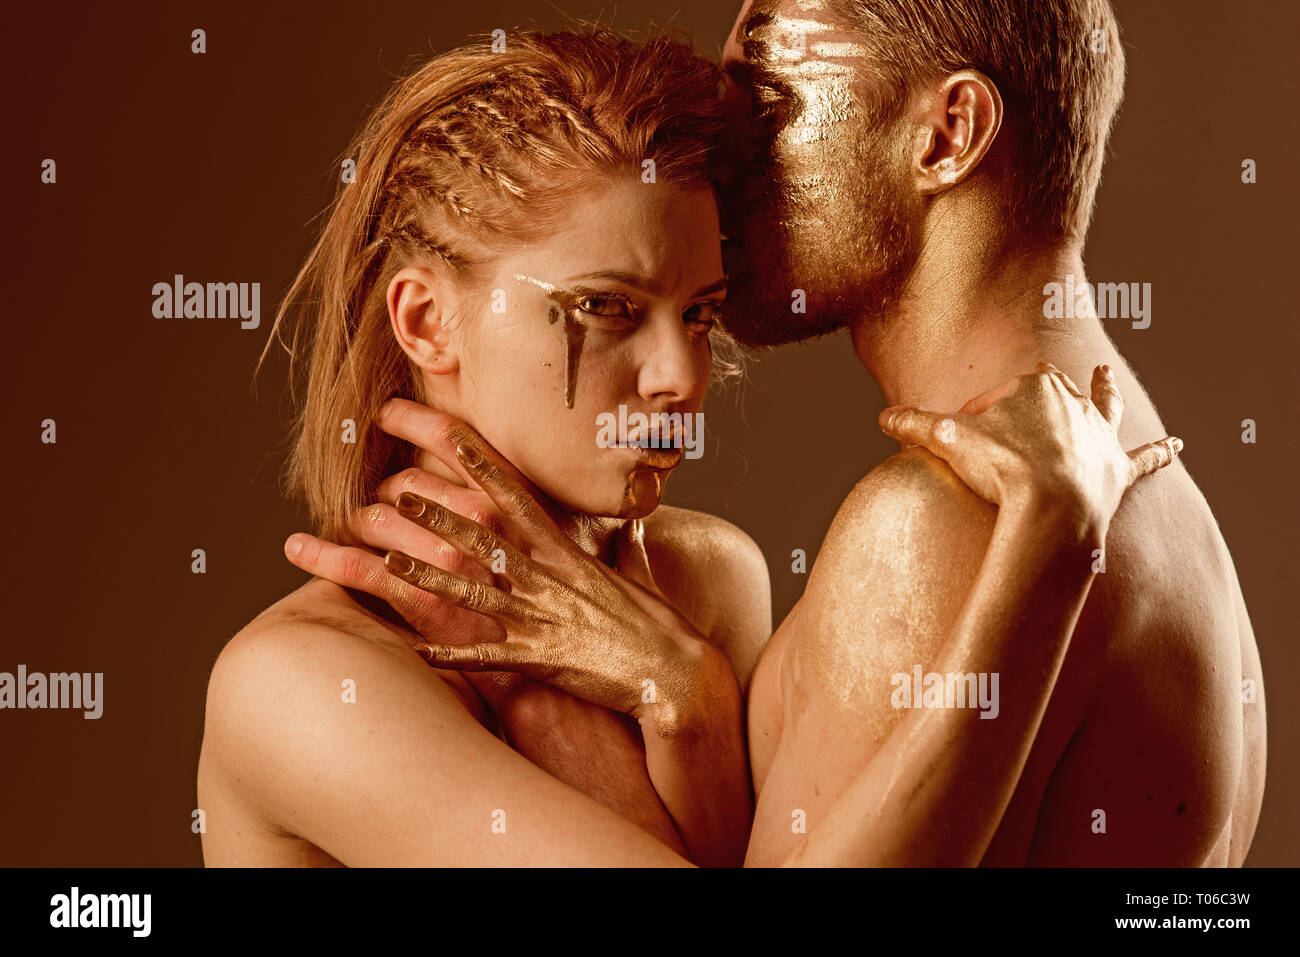 strangle concept. strangle of girl by man, both have golden paint on body. - Stock Image